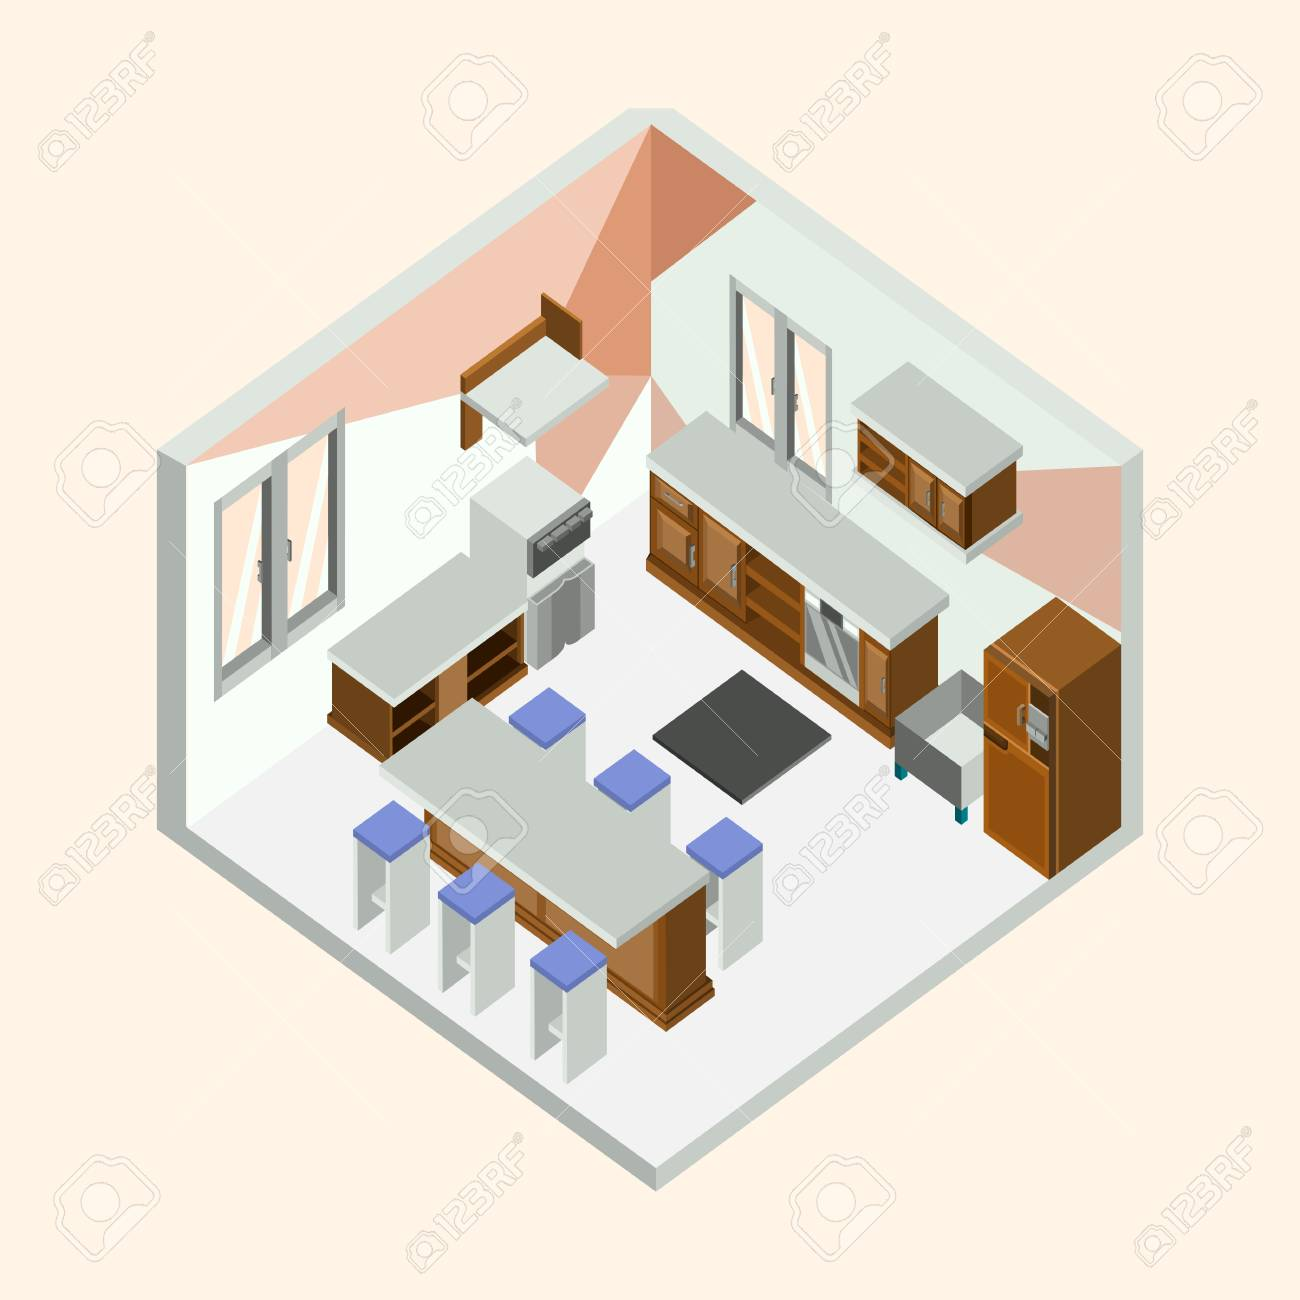 Kitchen Natural Wood Isometric Home Interior Vector Illustration Graphic  Design Stock Vector   97795116